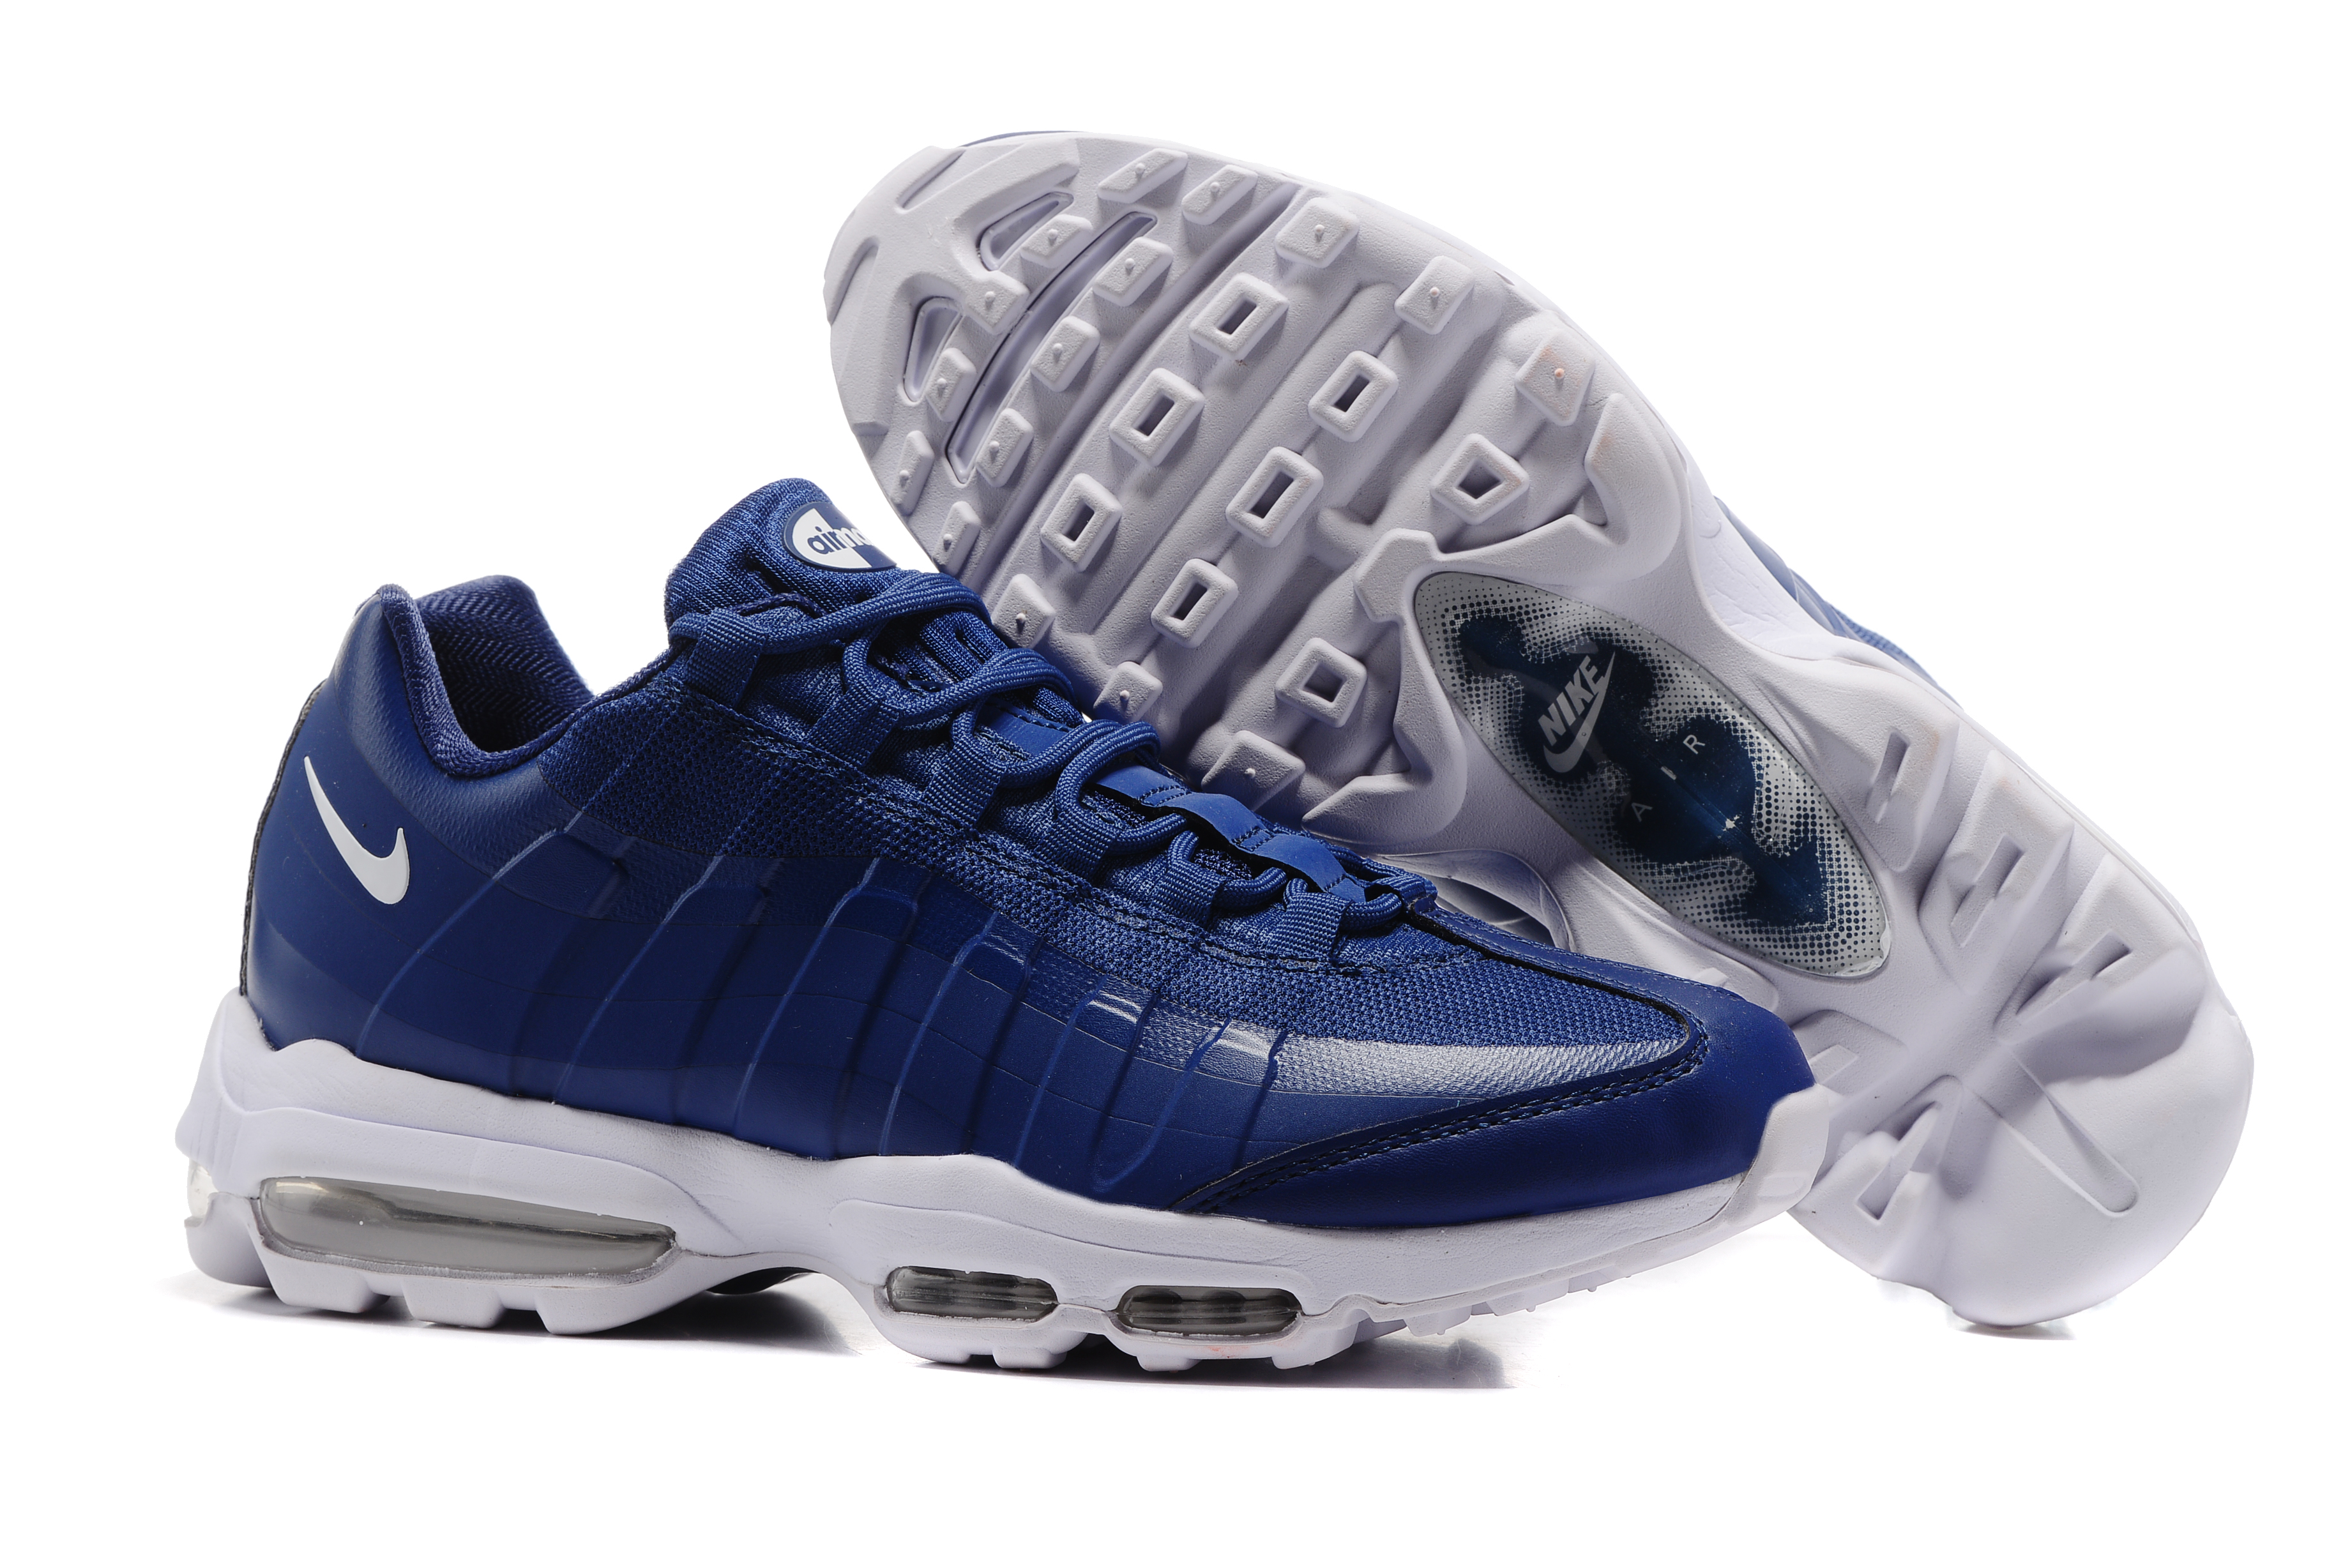 Nike Air Max 95 Blue White Shoes